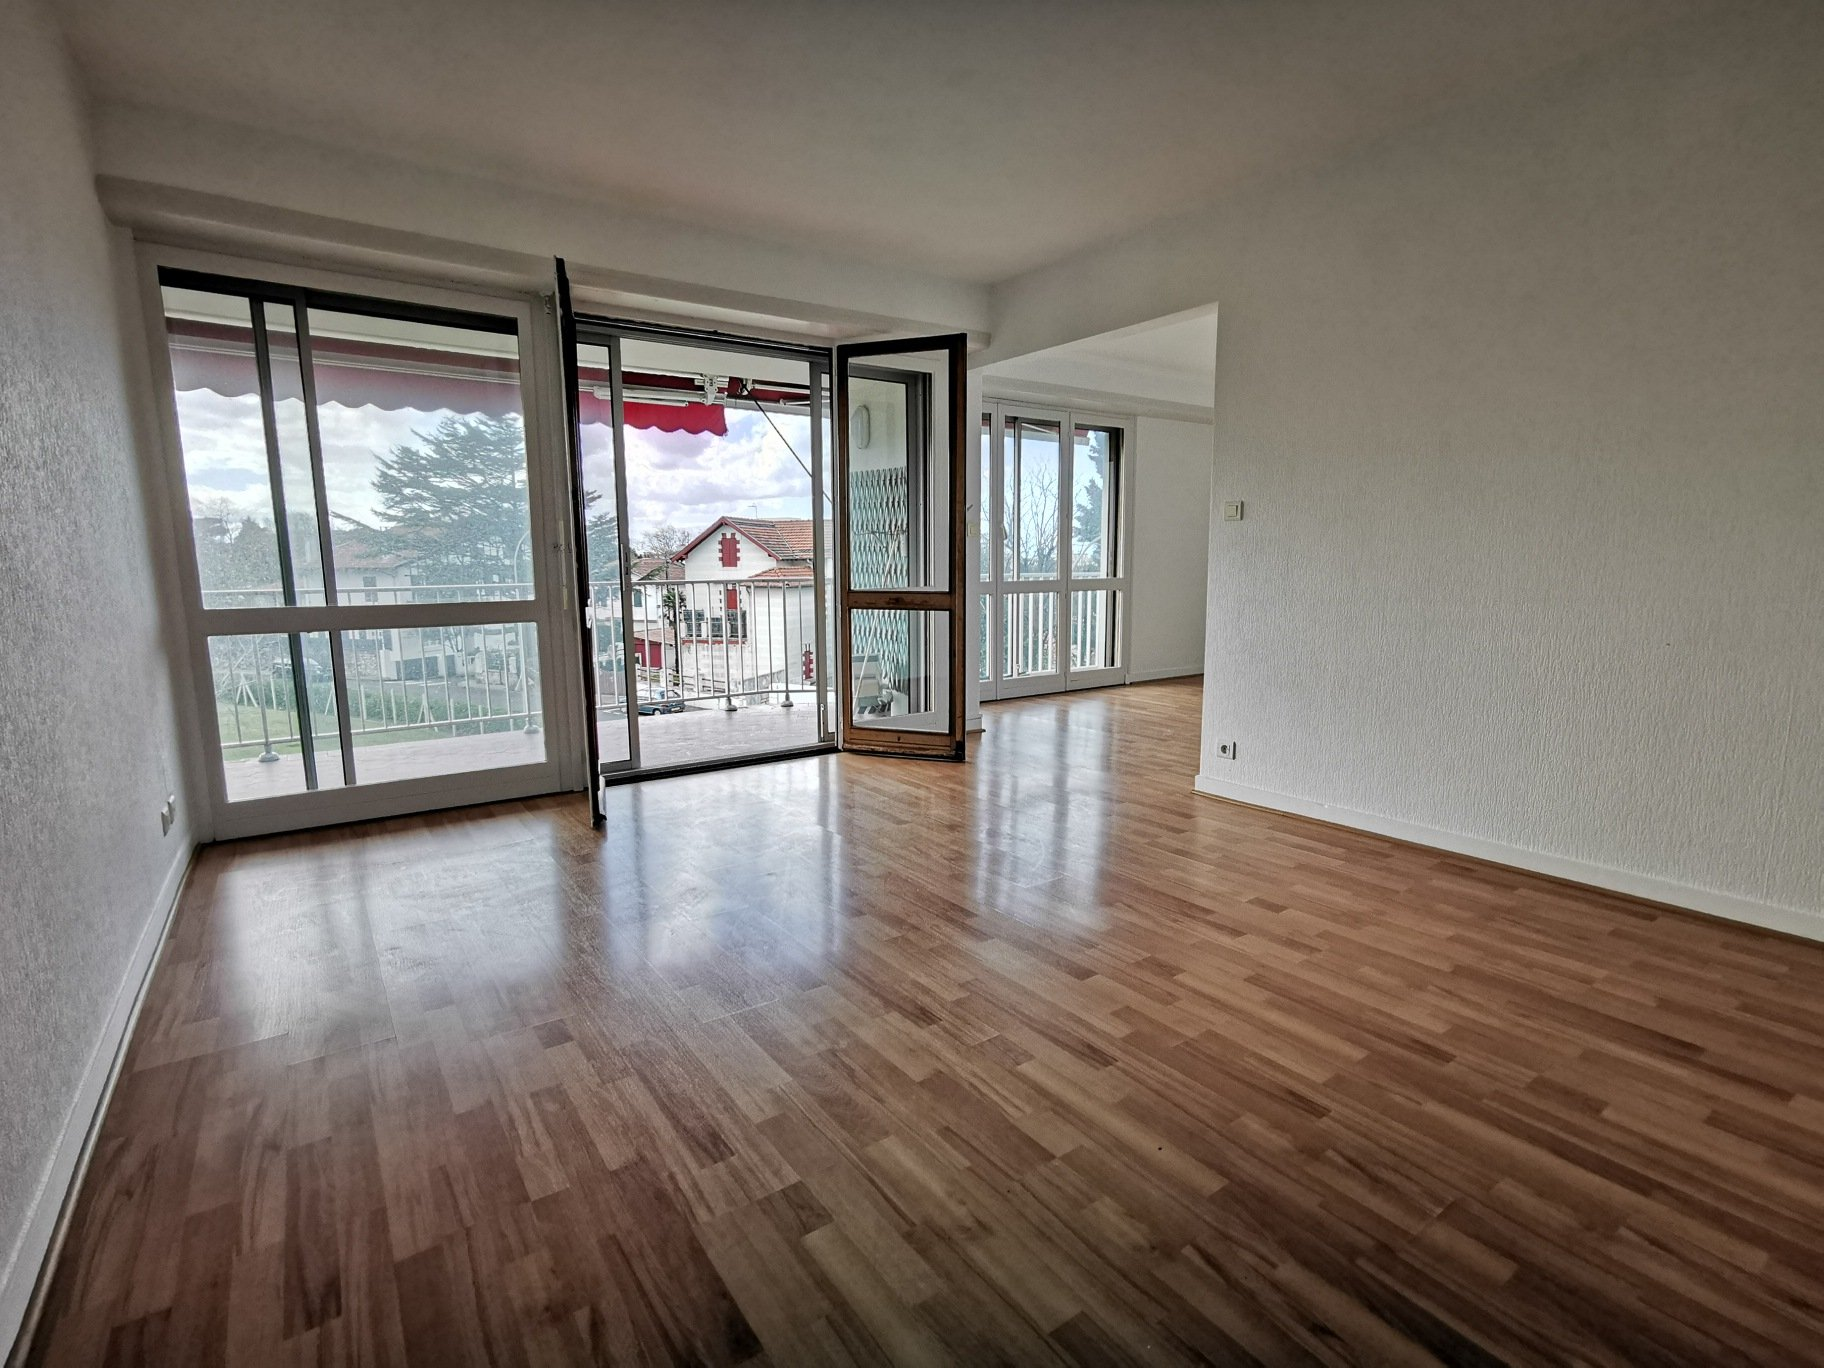 For sale flat5 rooms in BIARRITZ - 3